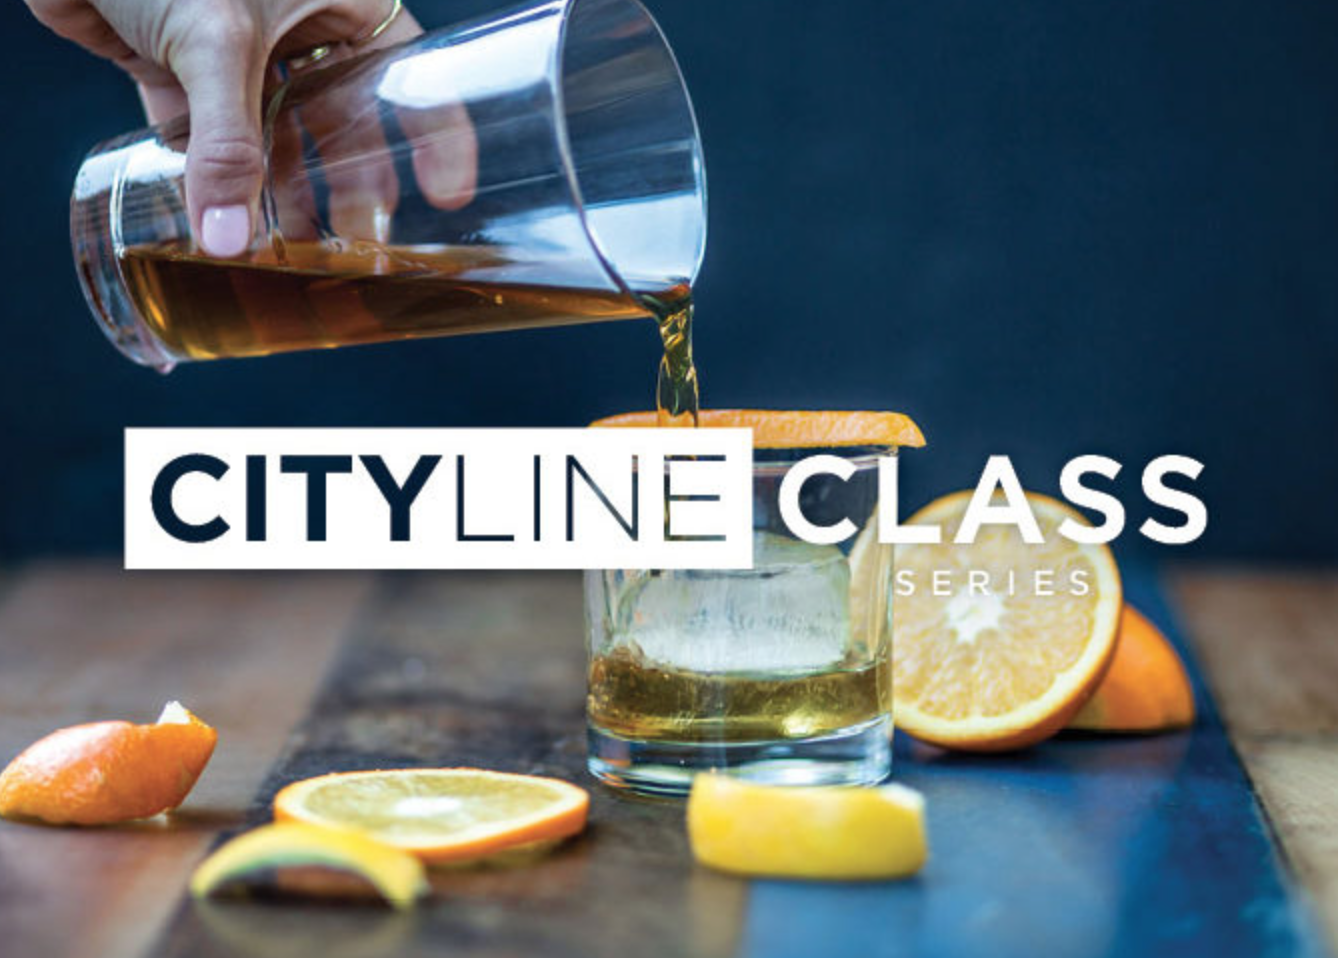 city line richardson classes tricky fish restaurant near me dallas